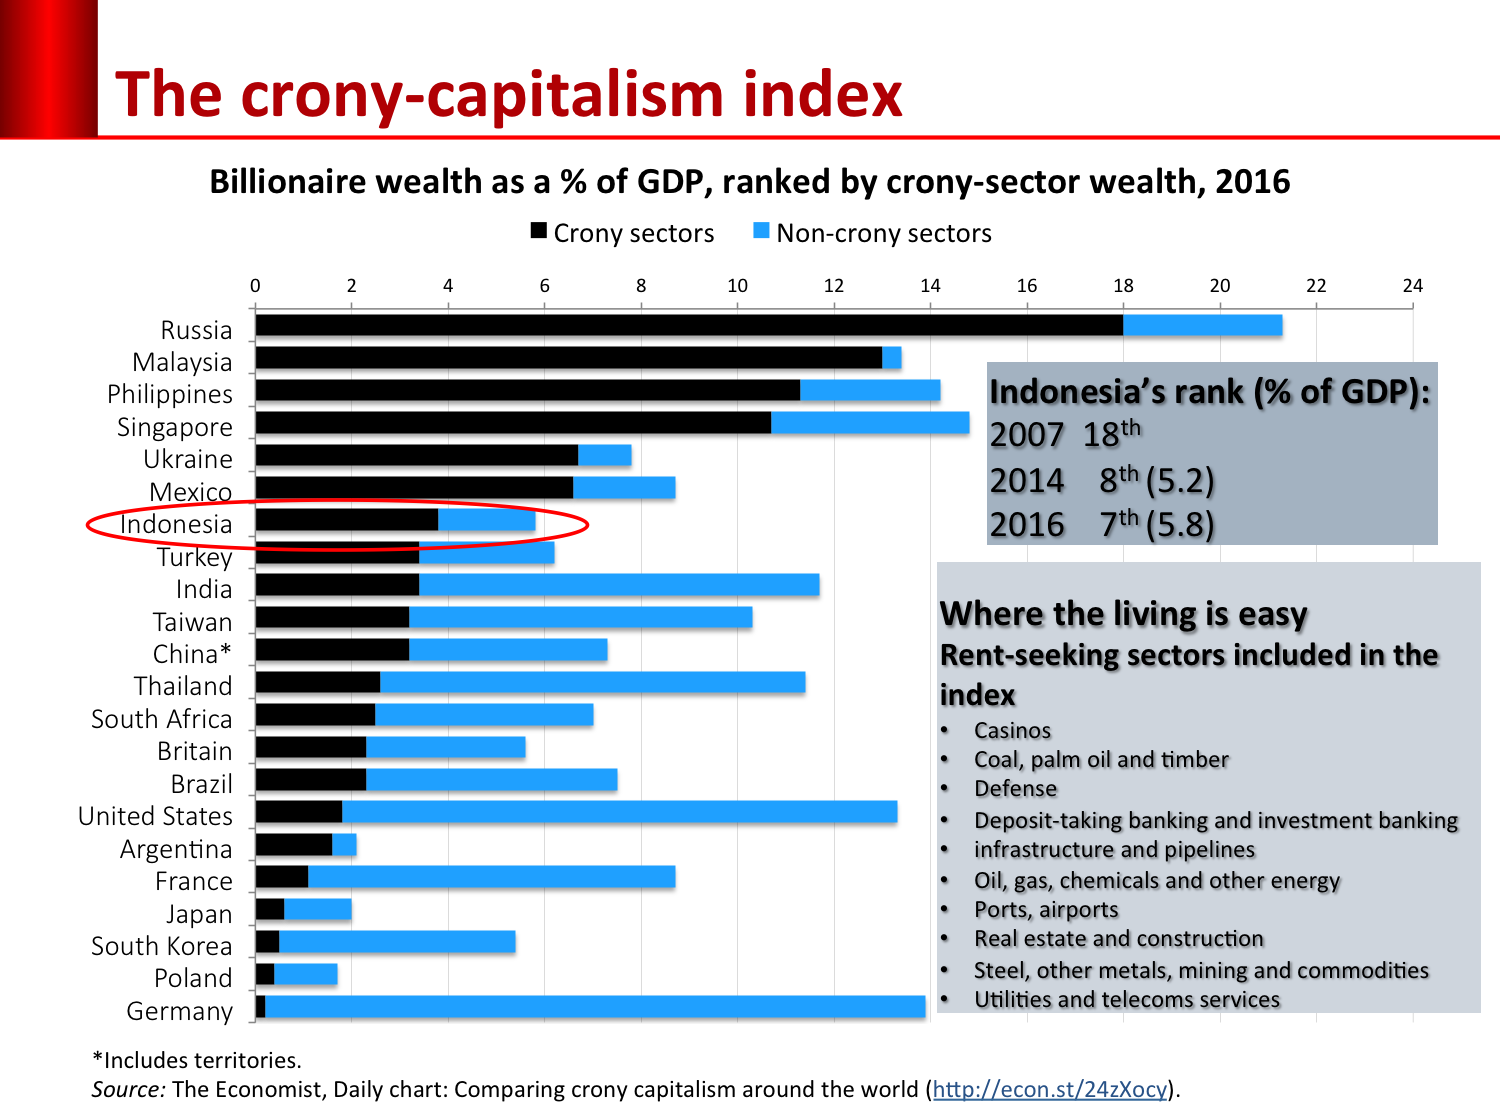 crony_index